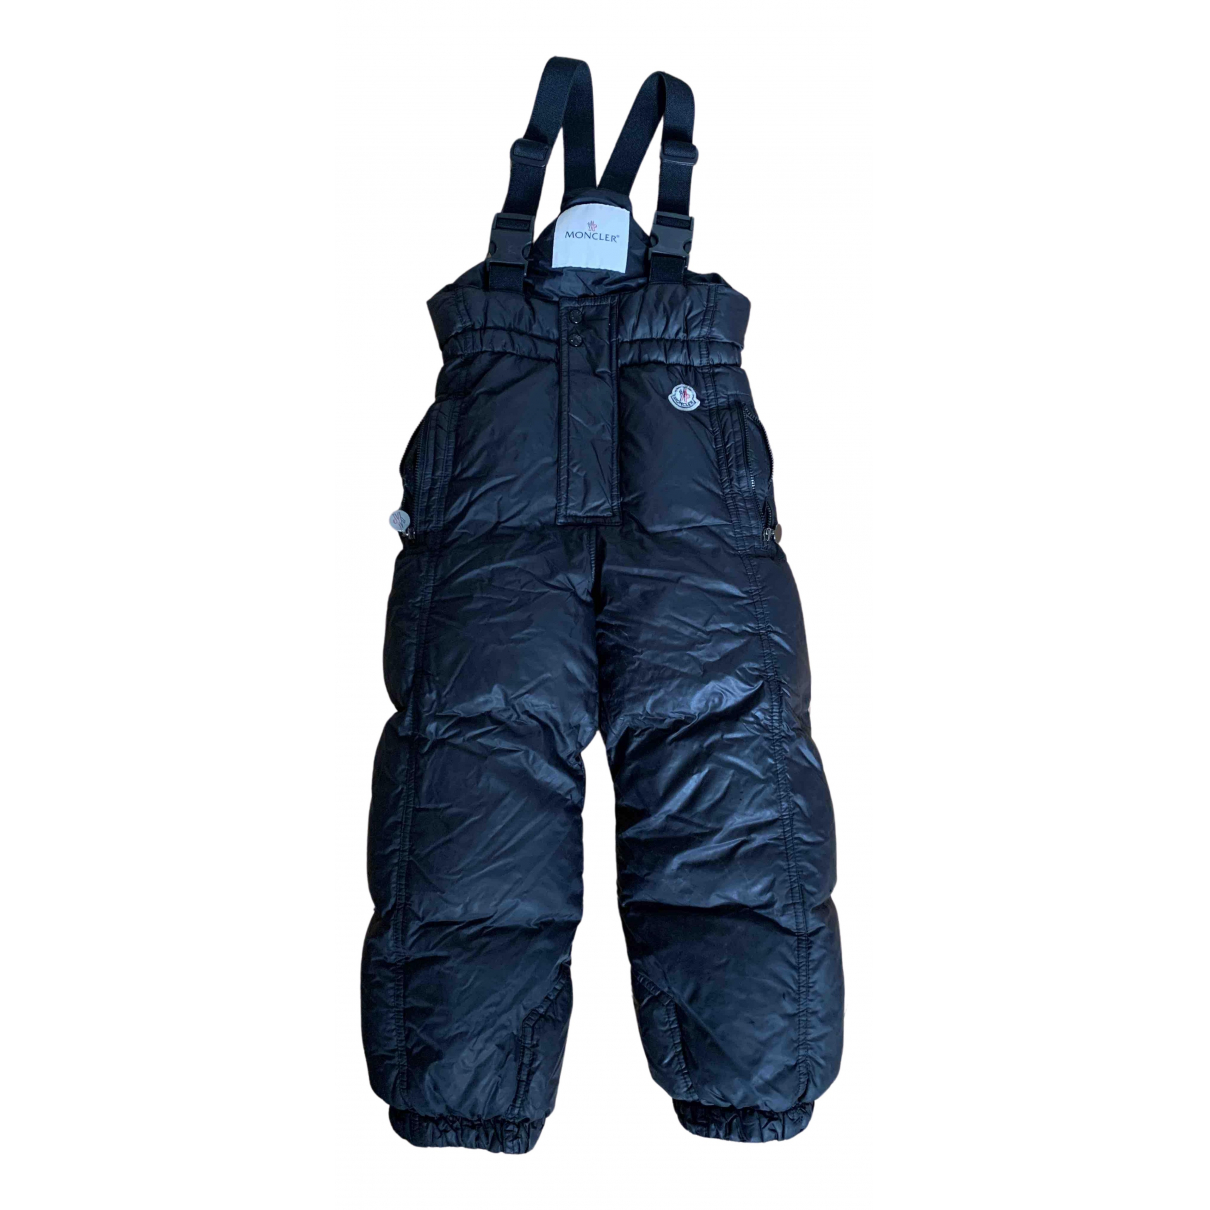 Moncler N Black Trousers for Kids 4 years - up to 102cm FR